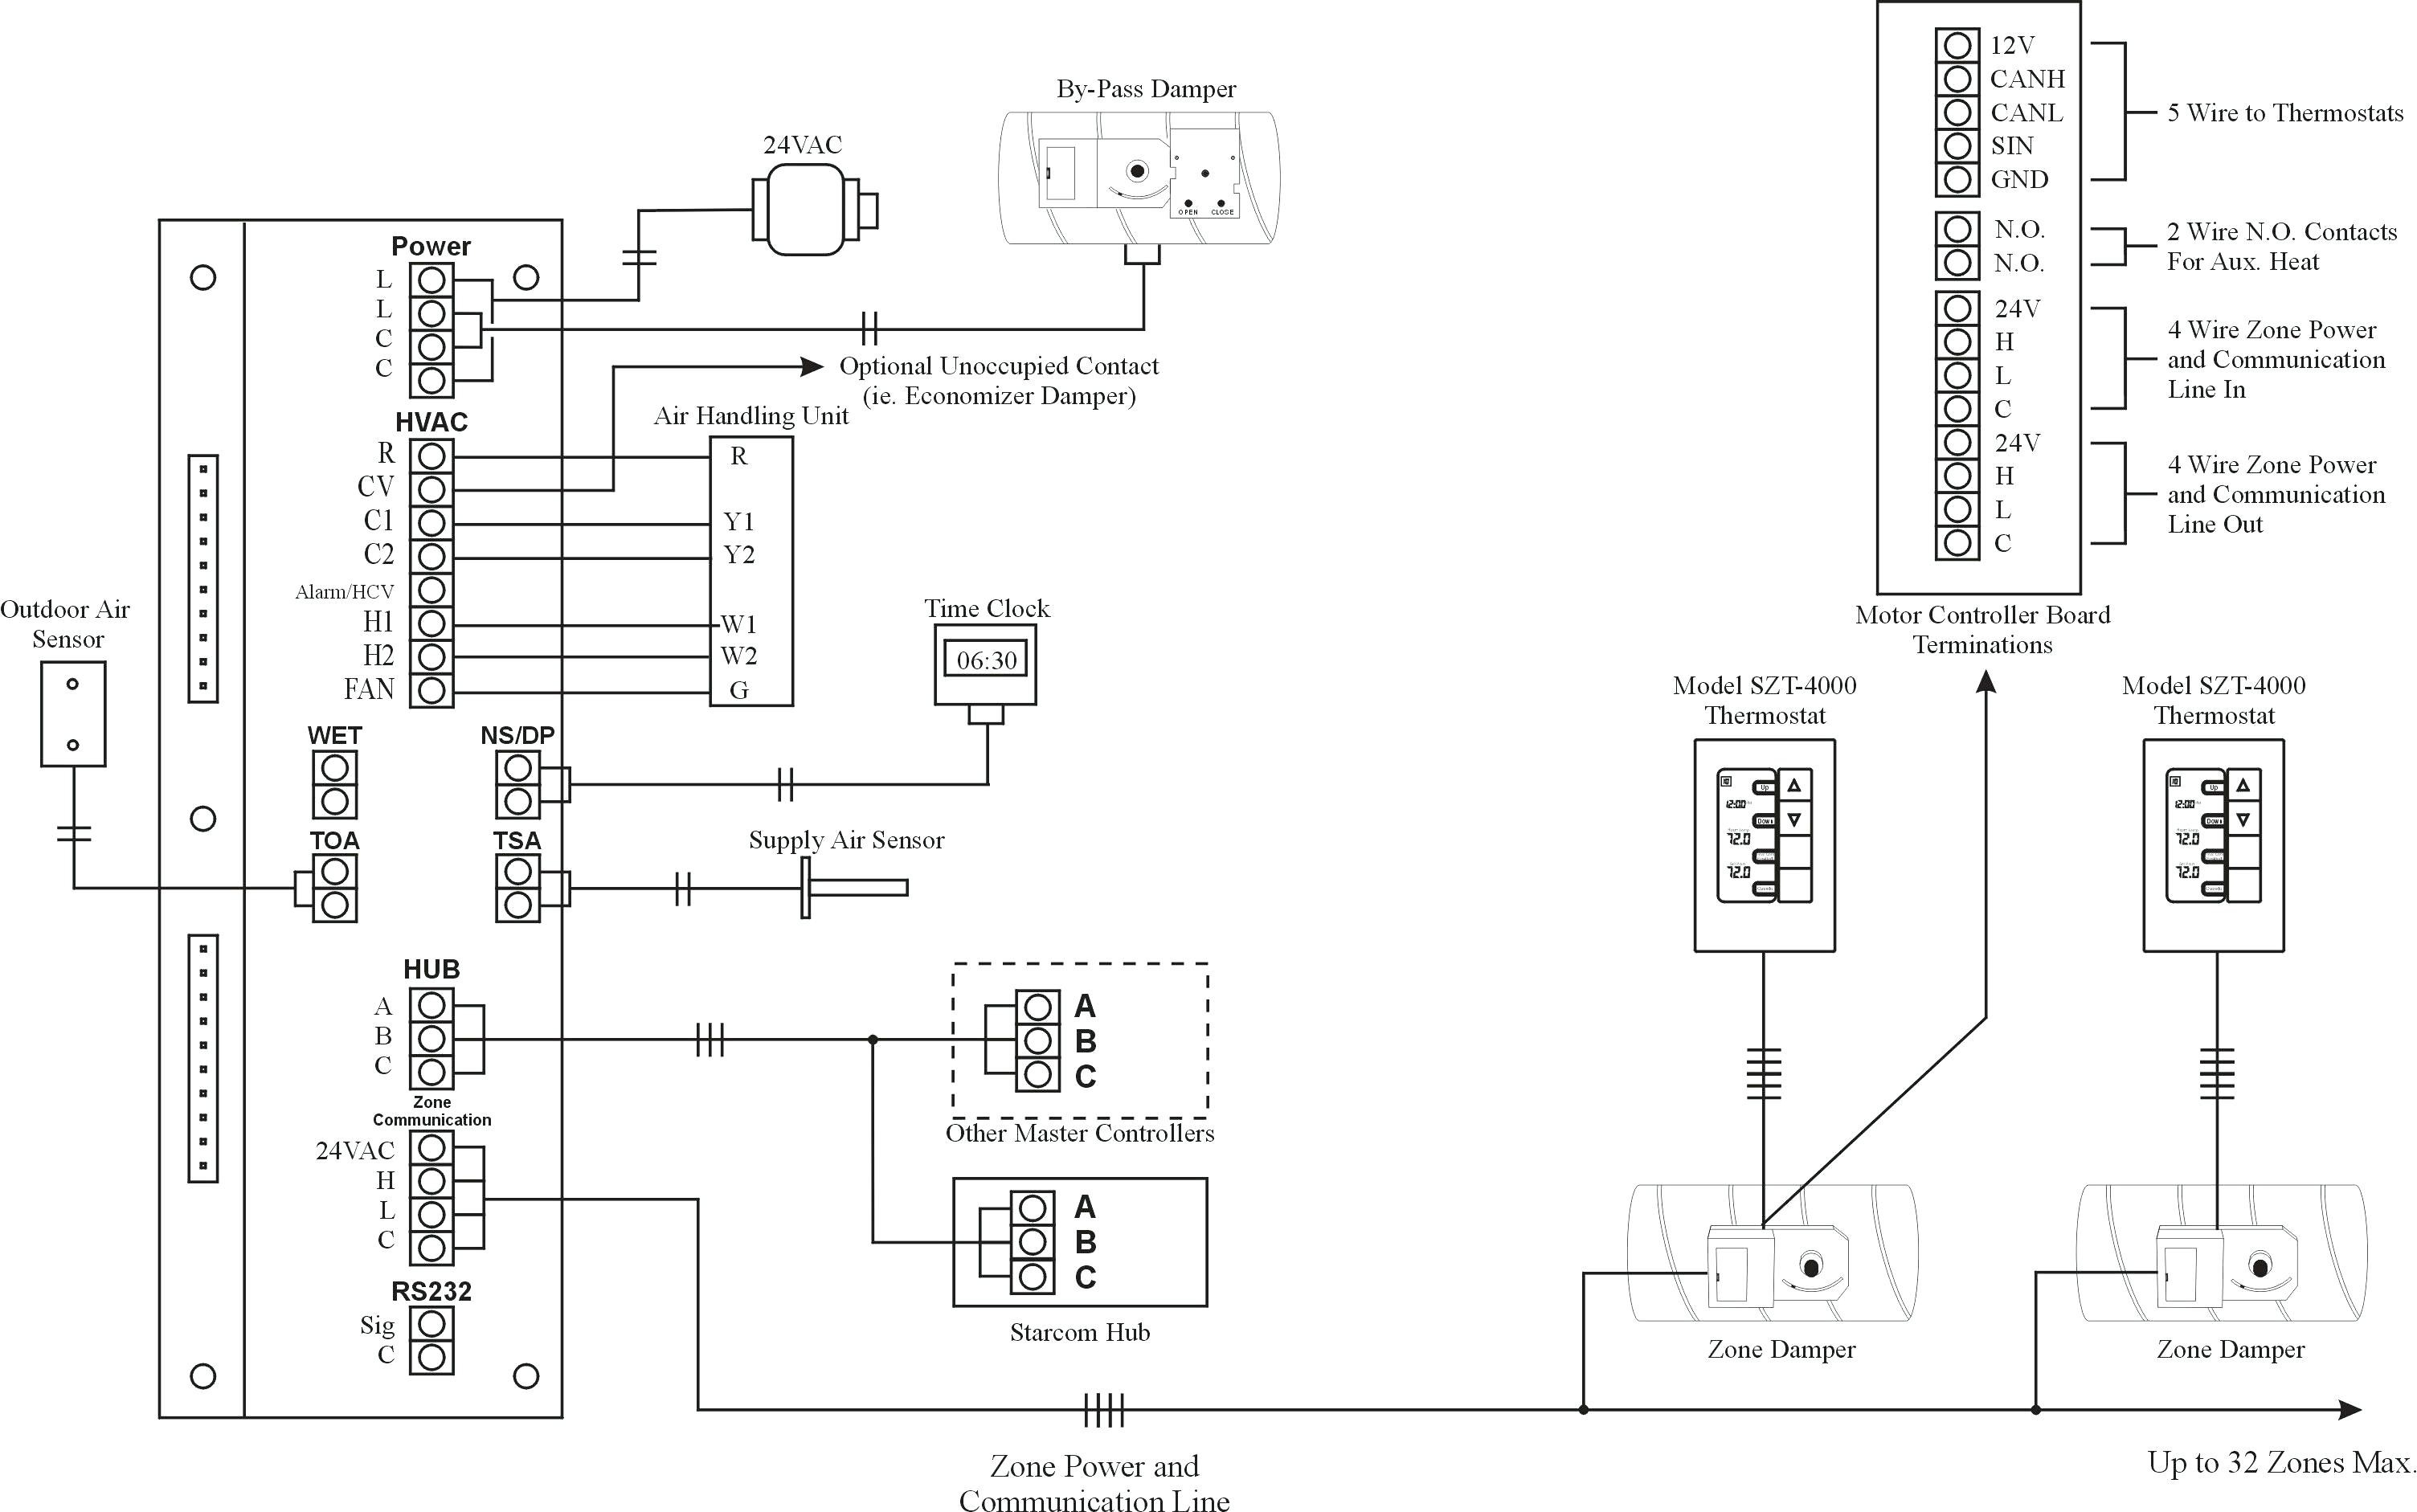 Heat Sensor Wiring Diagram | Wiring Diagram - Photocell Wiring Diagram